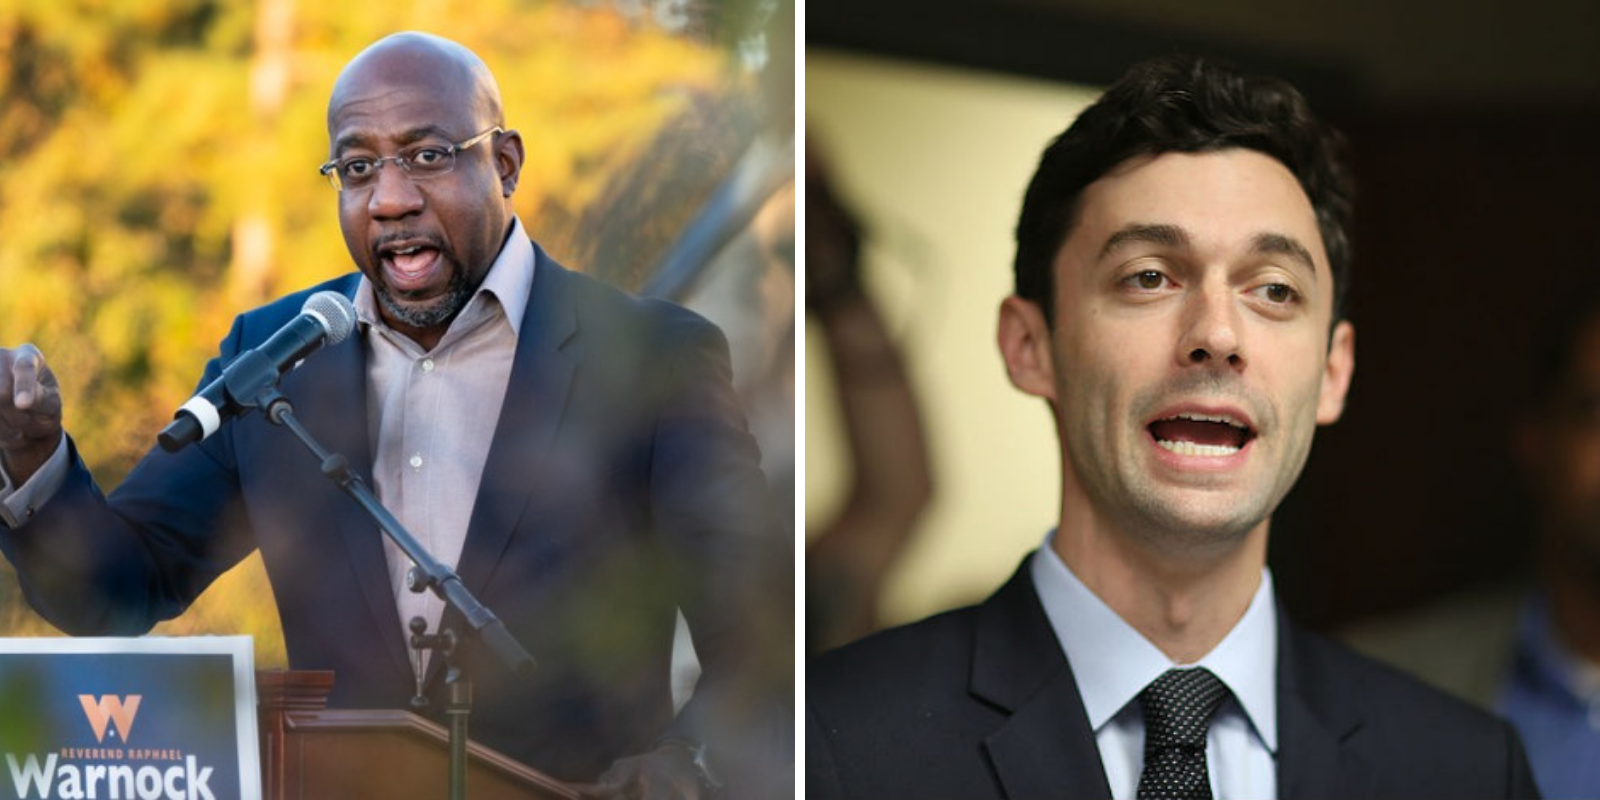 Georgia voters outraged over $1,400 relief checks when $2,000 was promised